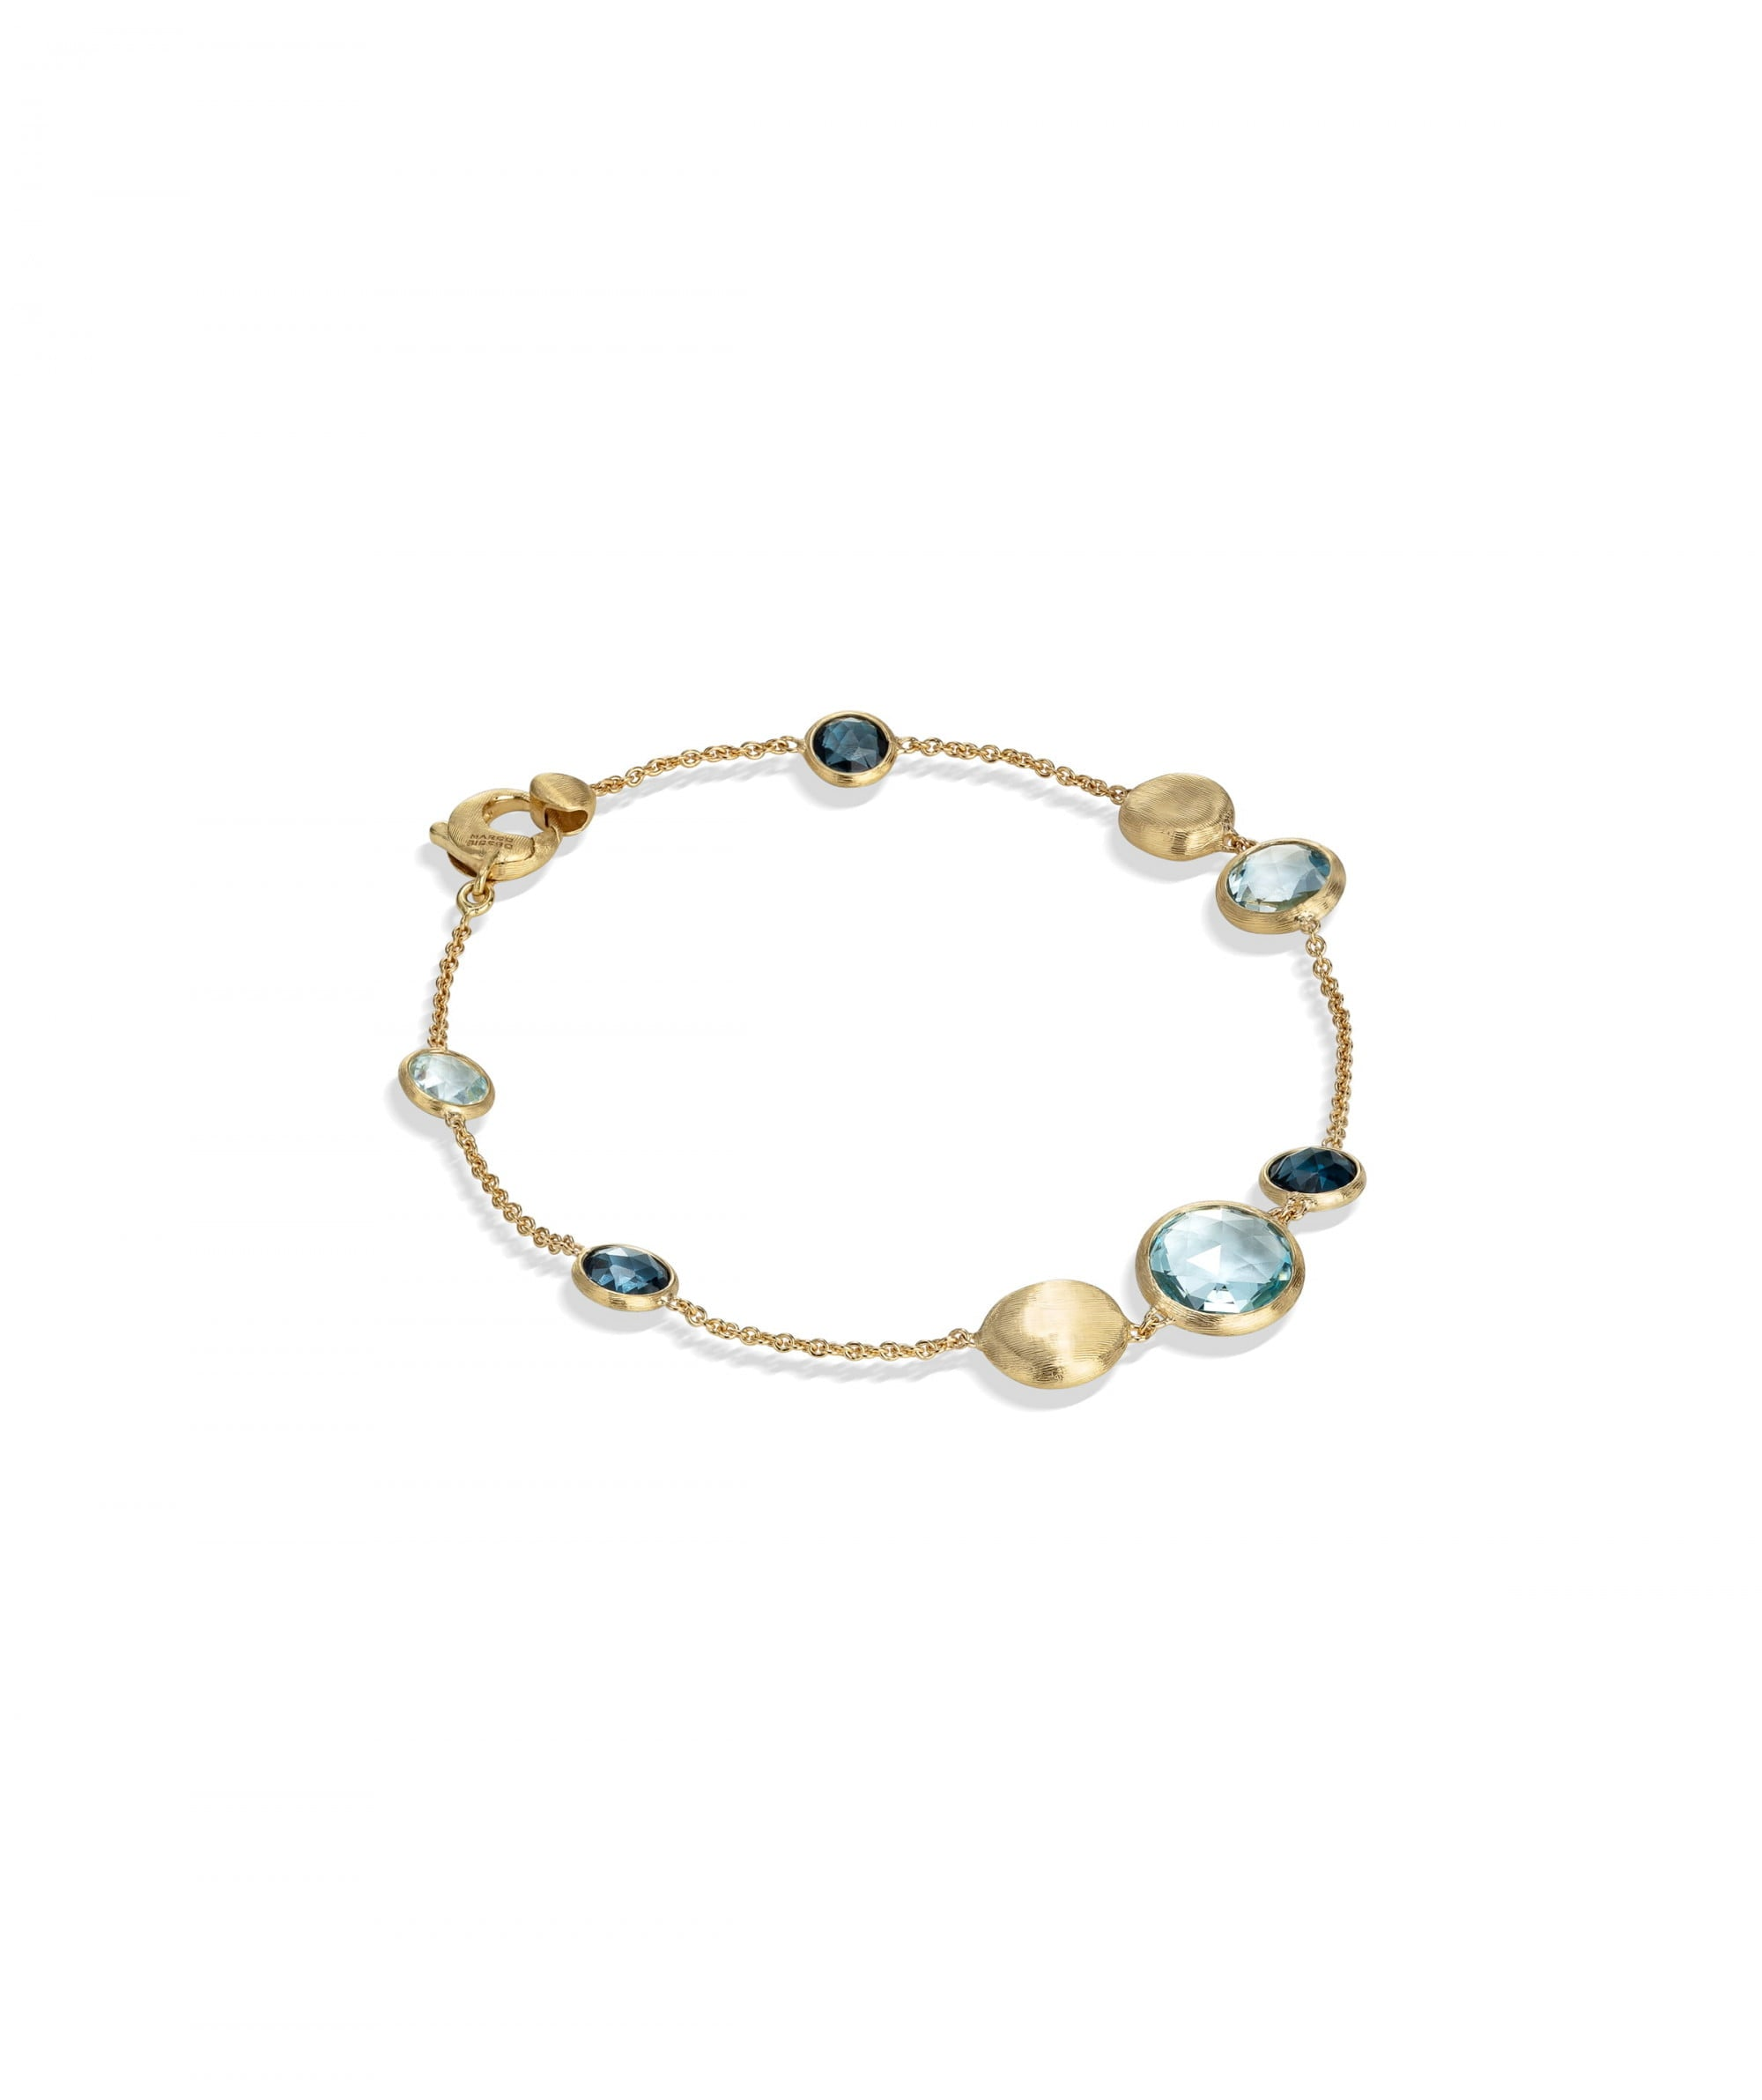 Jaipur Colour Bracelet in 18k Yellow Gold with Gemstones Mixed Blue - Orsini Jewellers NZ